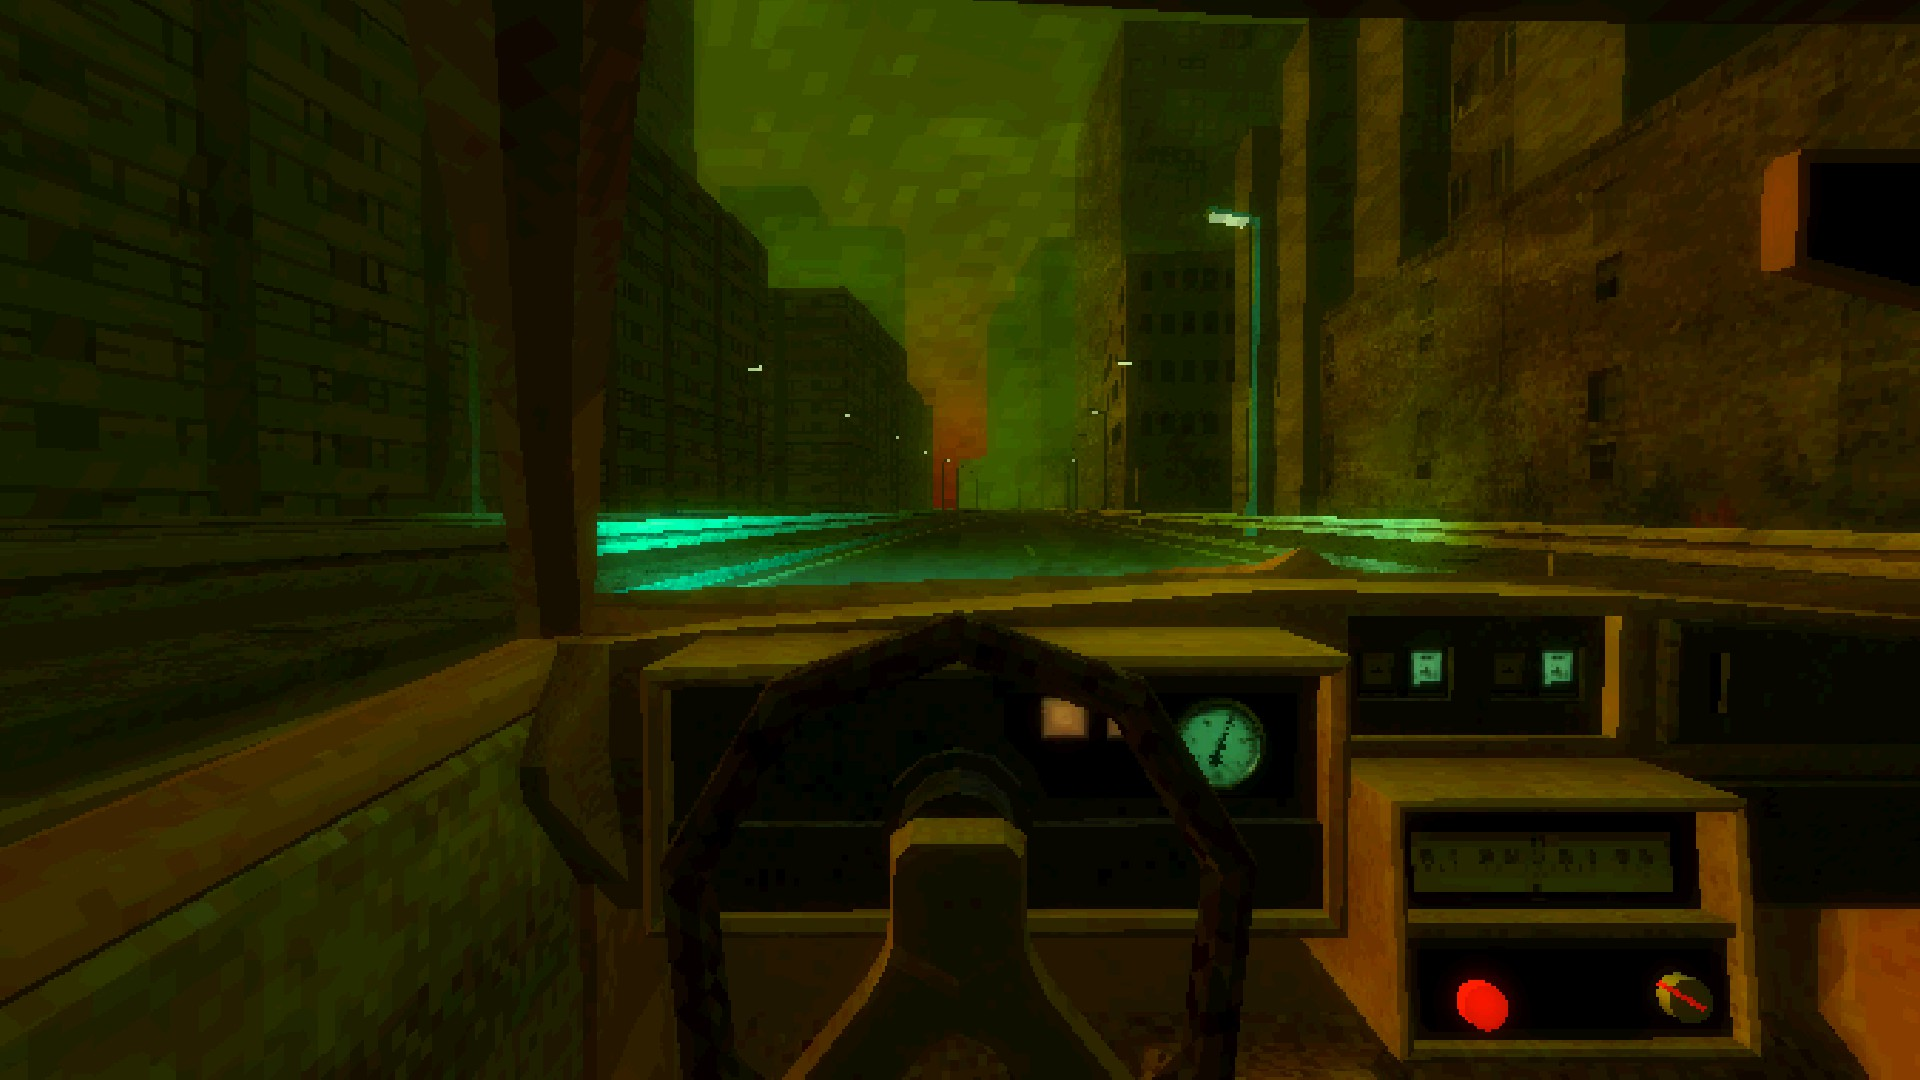 An interior view of the car from one of the game's driving sections. Buildings flank the car on either side.